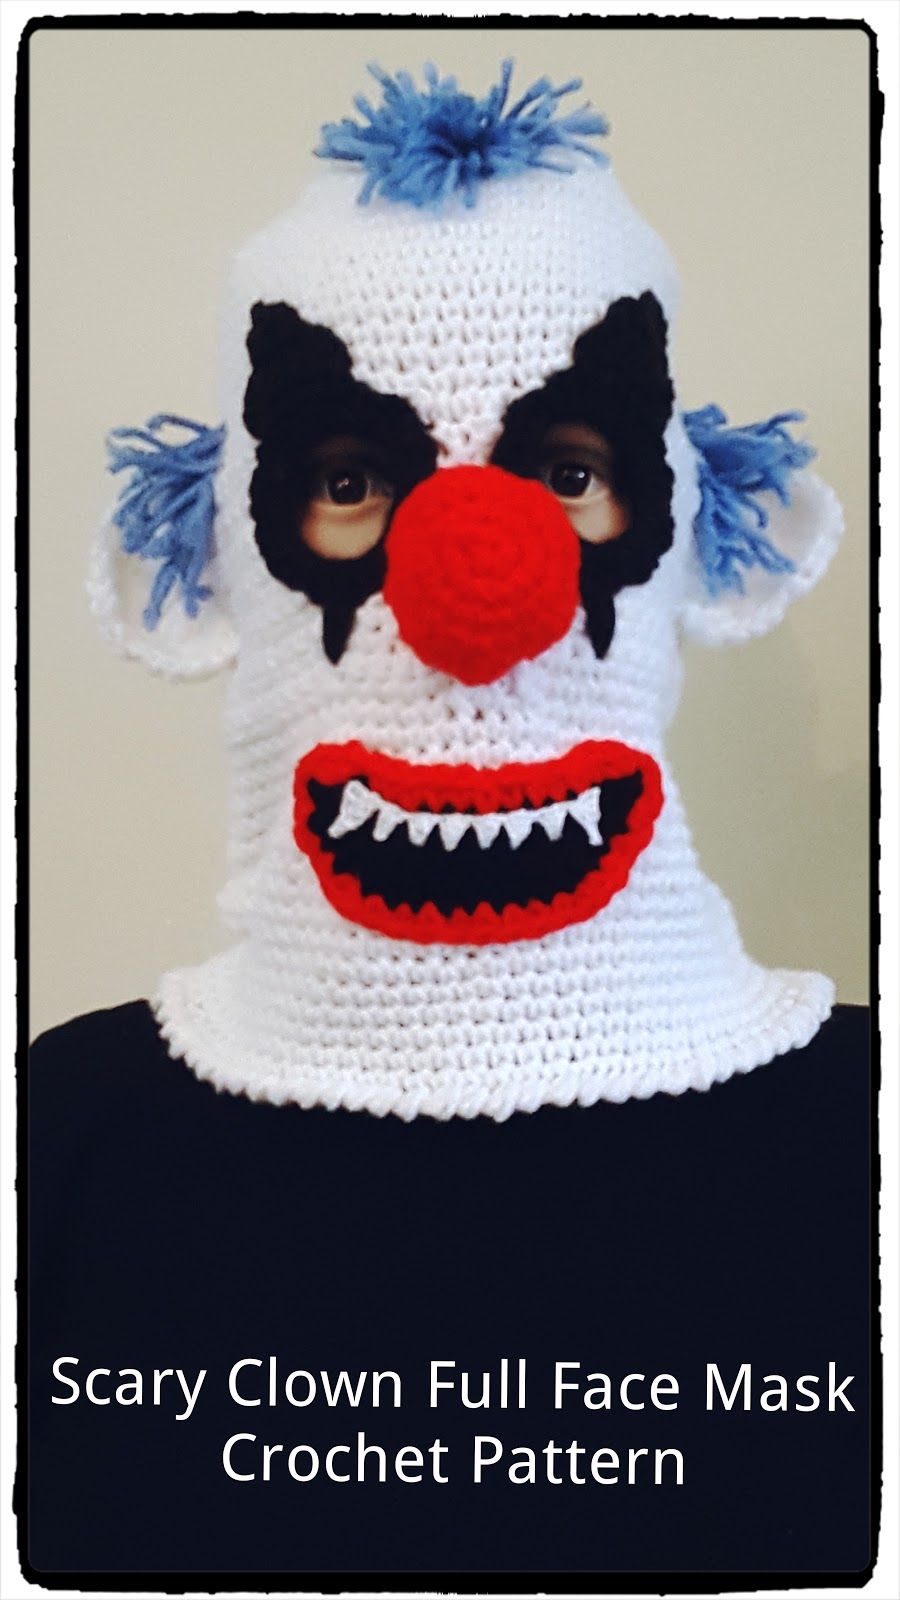 Crazy Clown Ski Mask Crochet Pattern